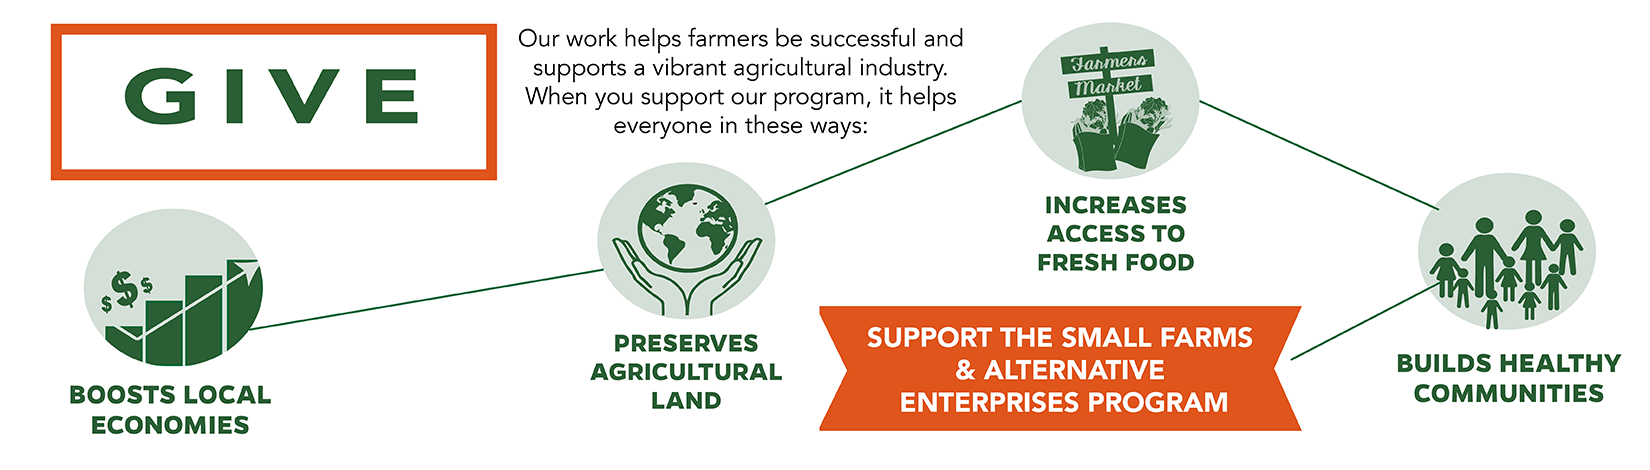 Give. Our work helps farmers be suiccessful and supports a vibrant agriculture industry. When you support our work, it helps everyone in these ways: 1-  Boost local economies 2- Preserves agricultural land 3- Increases access to fresh food 4- Builds healthy communities